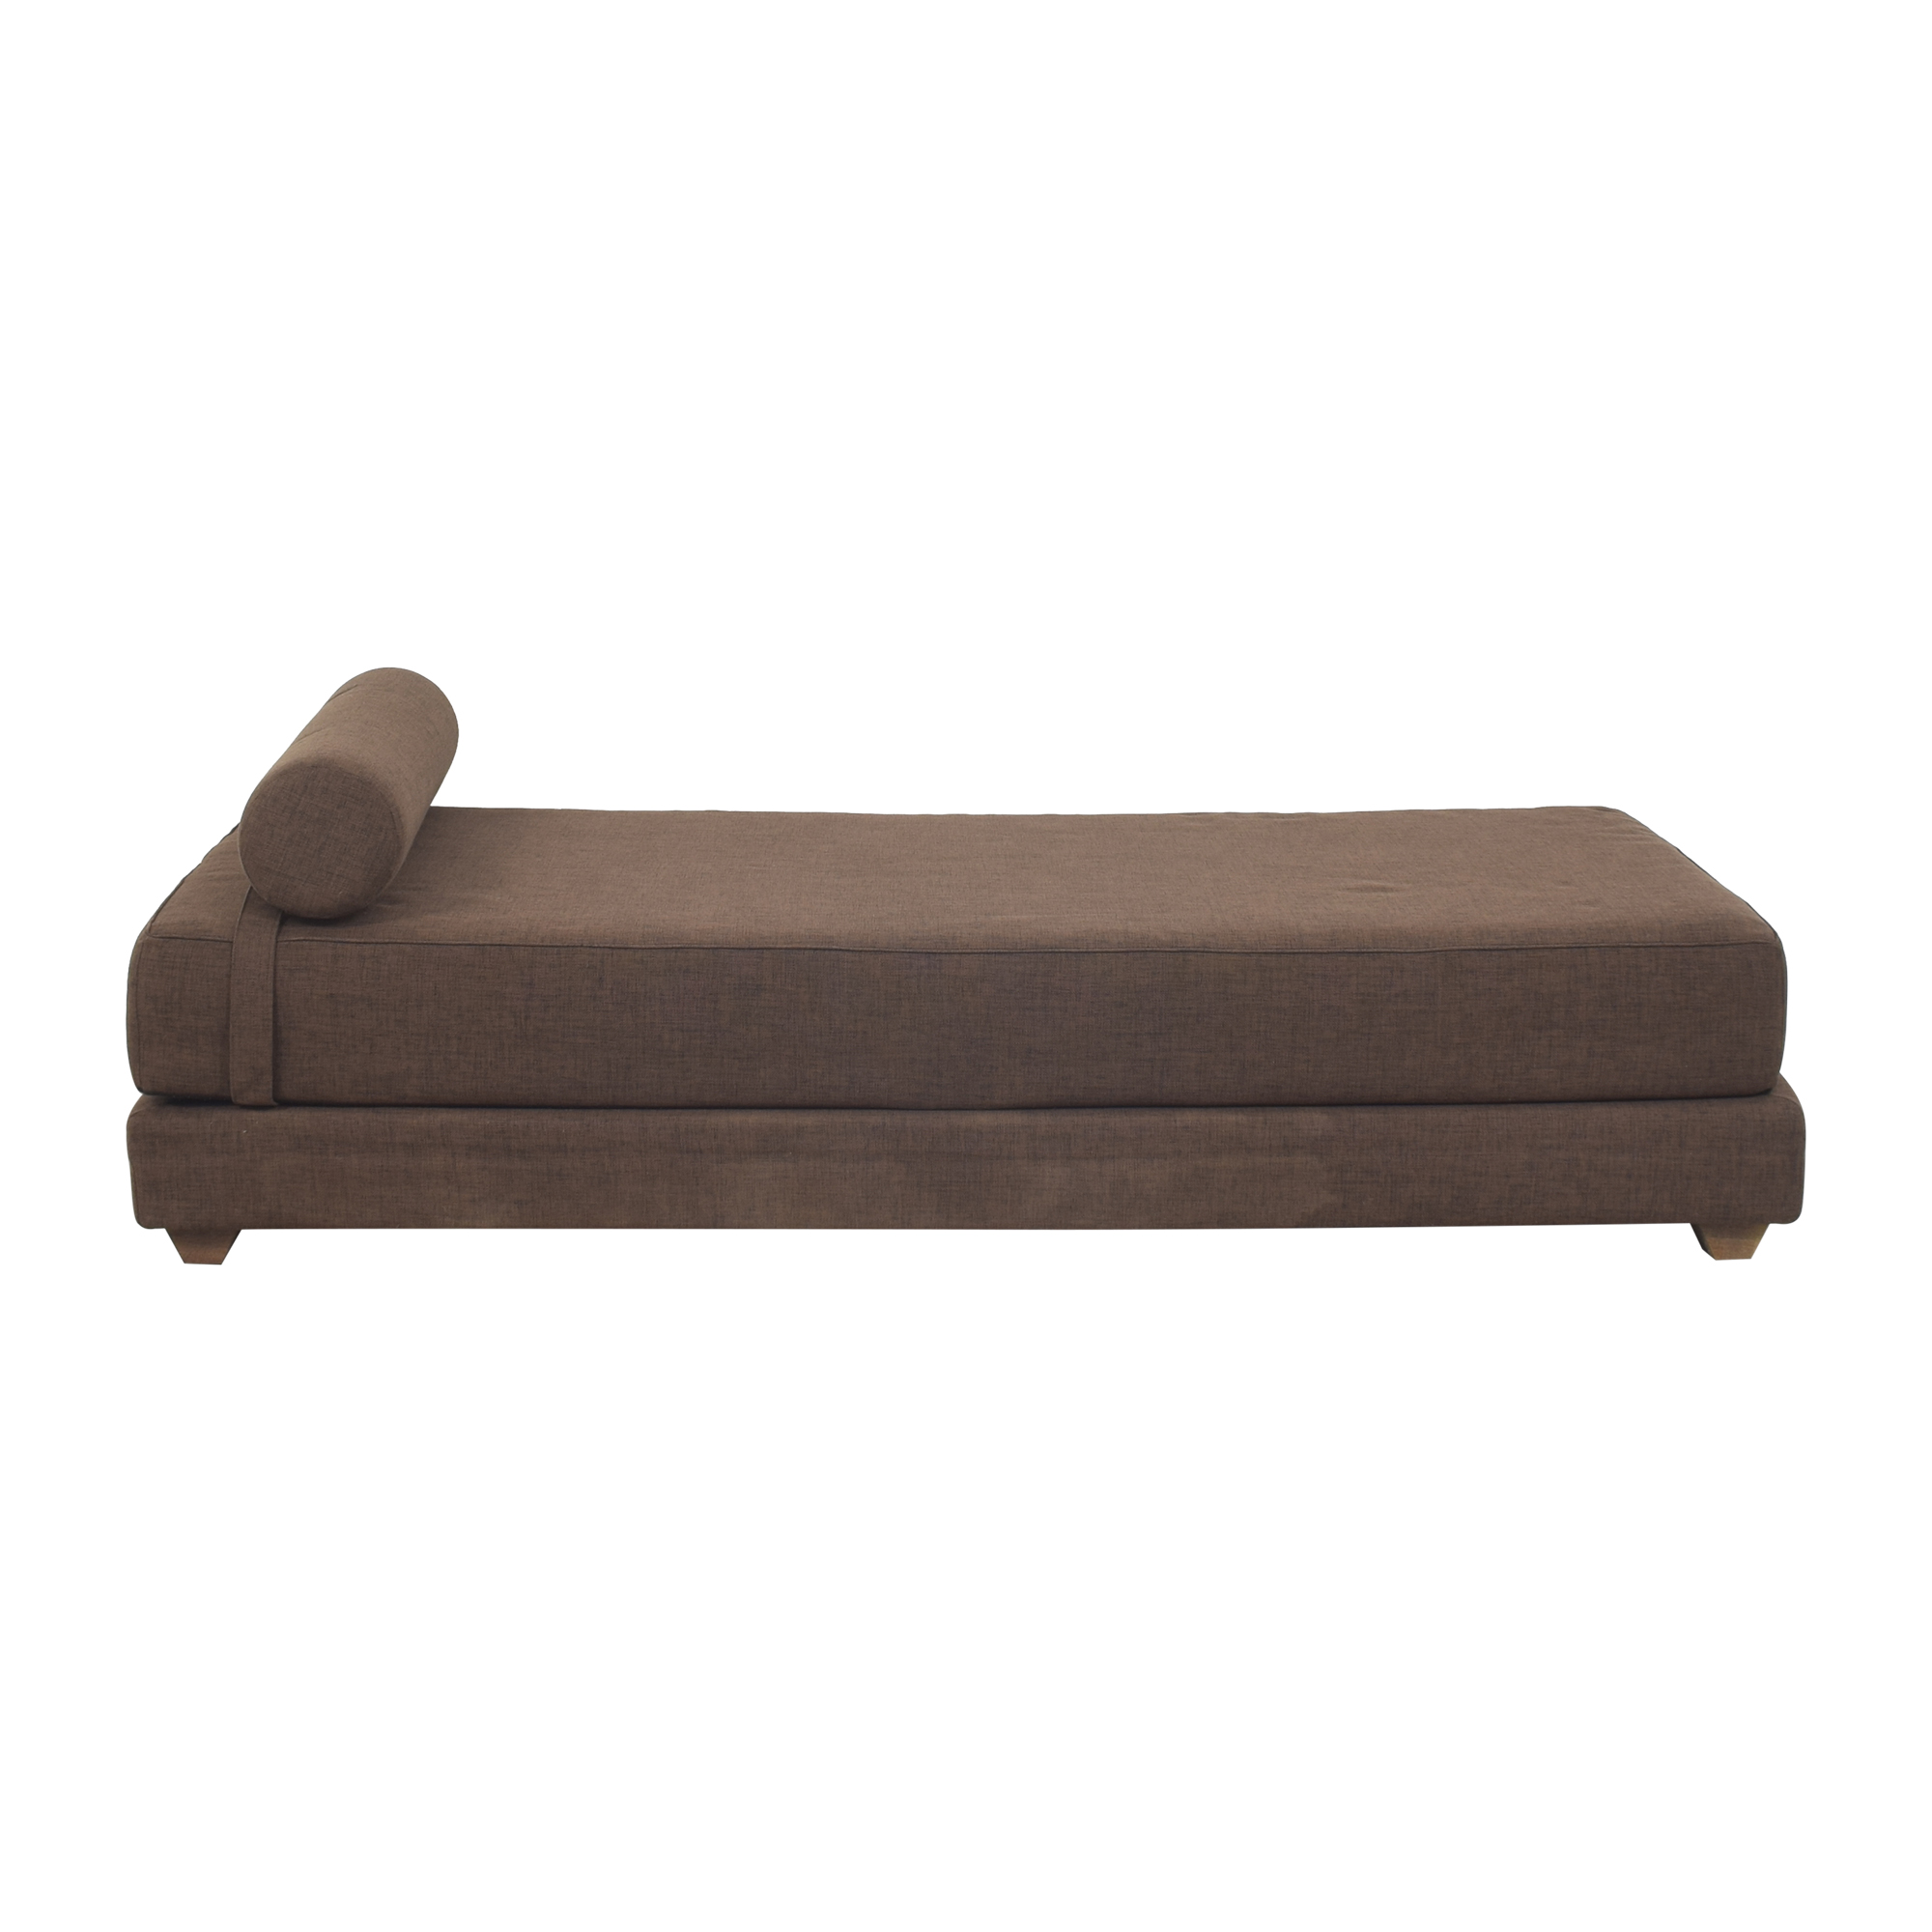 CB2 CB2 Lubi Sleeper Daybed for sale